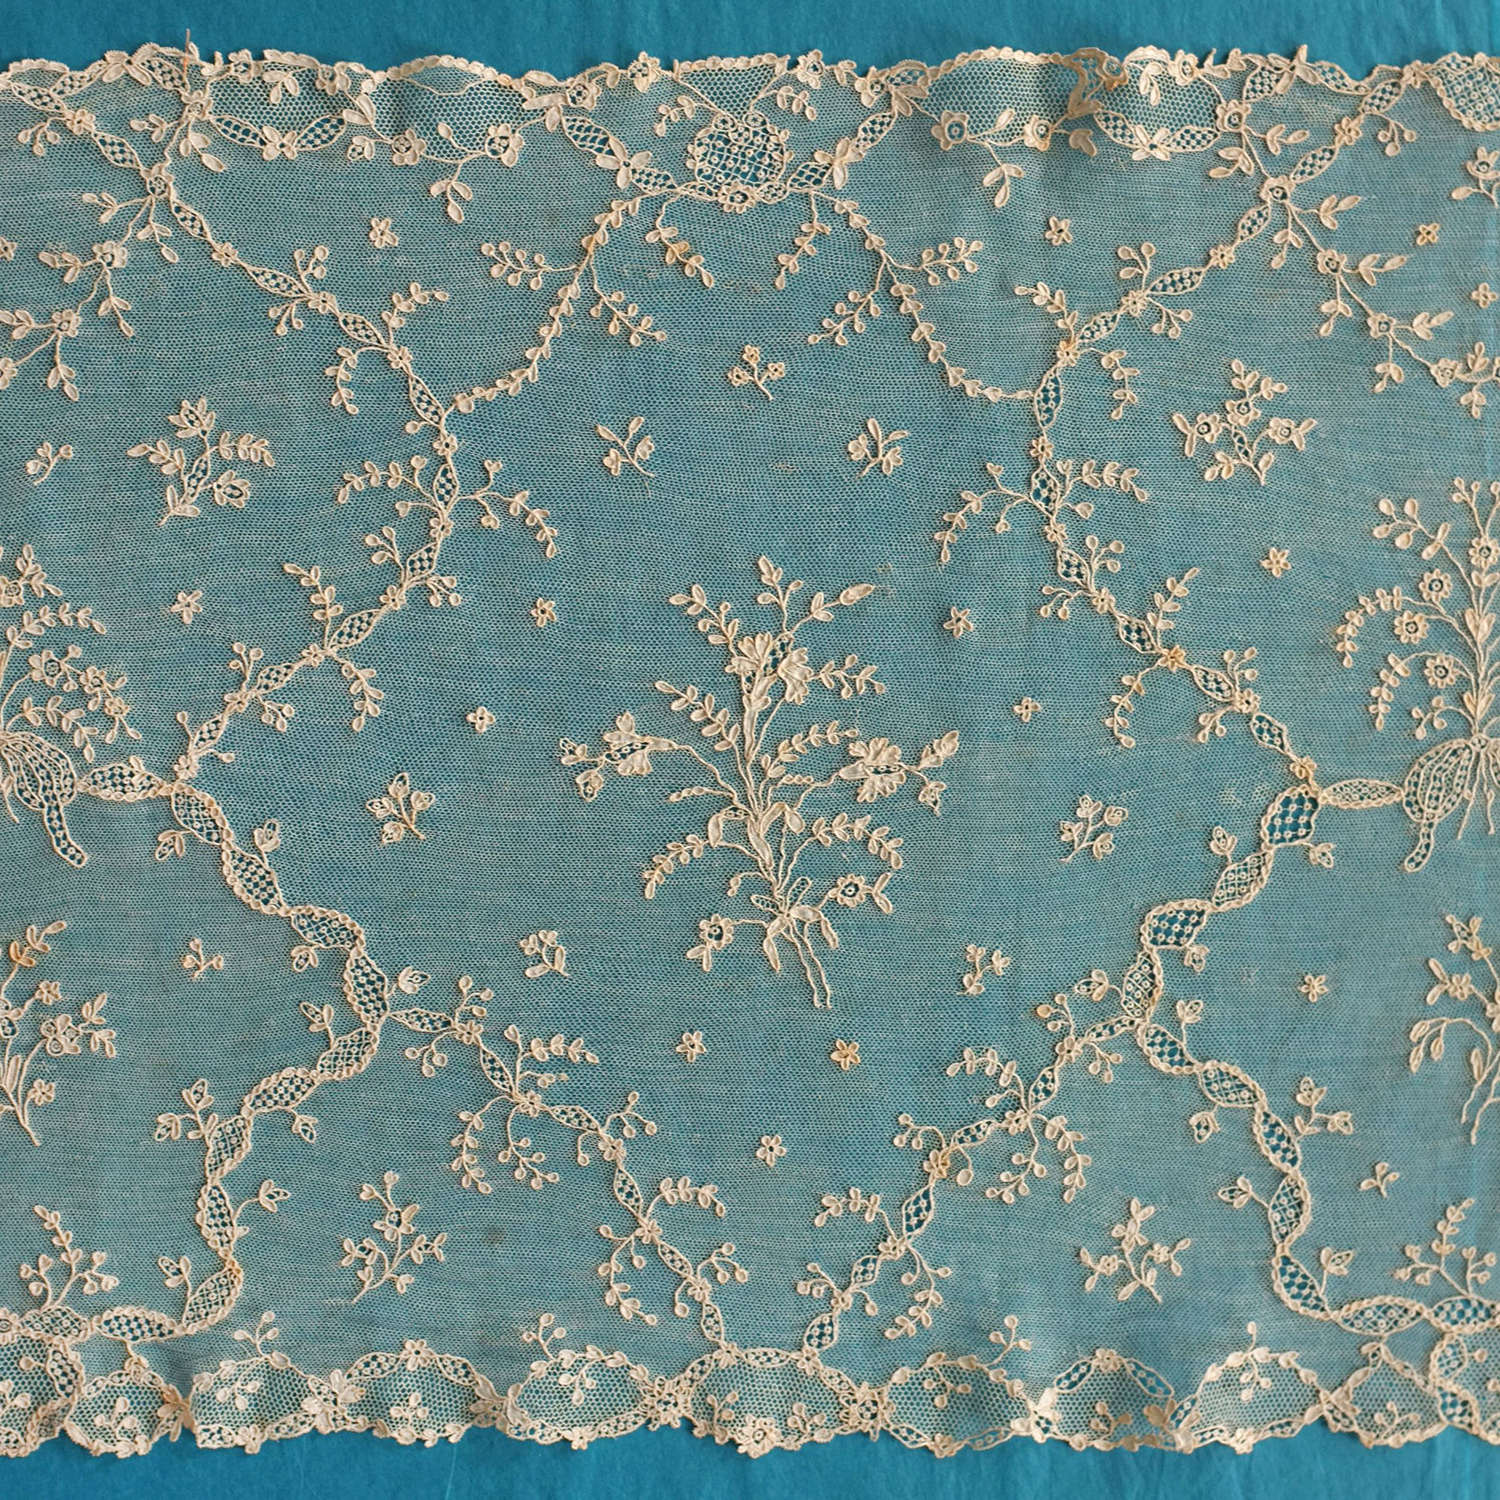 Antique Alencon Needle Lace Shawl, late 18th early 19th Century